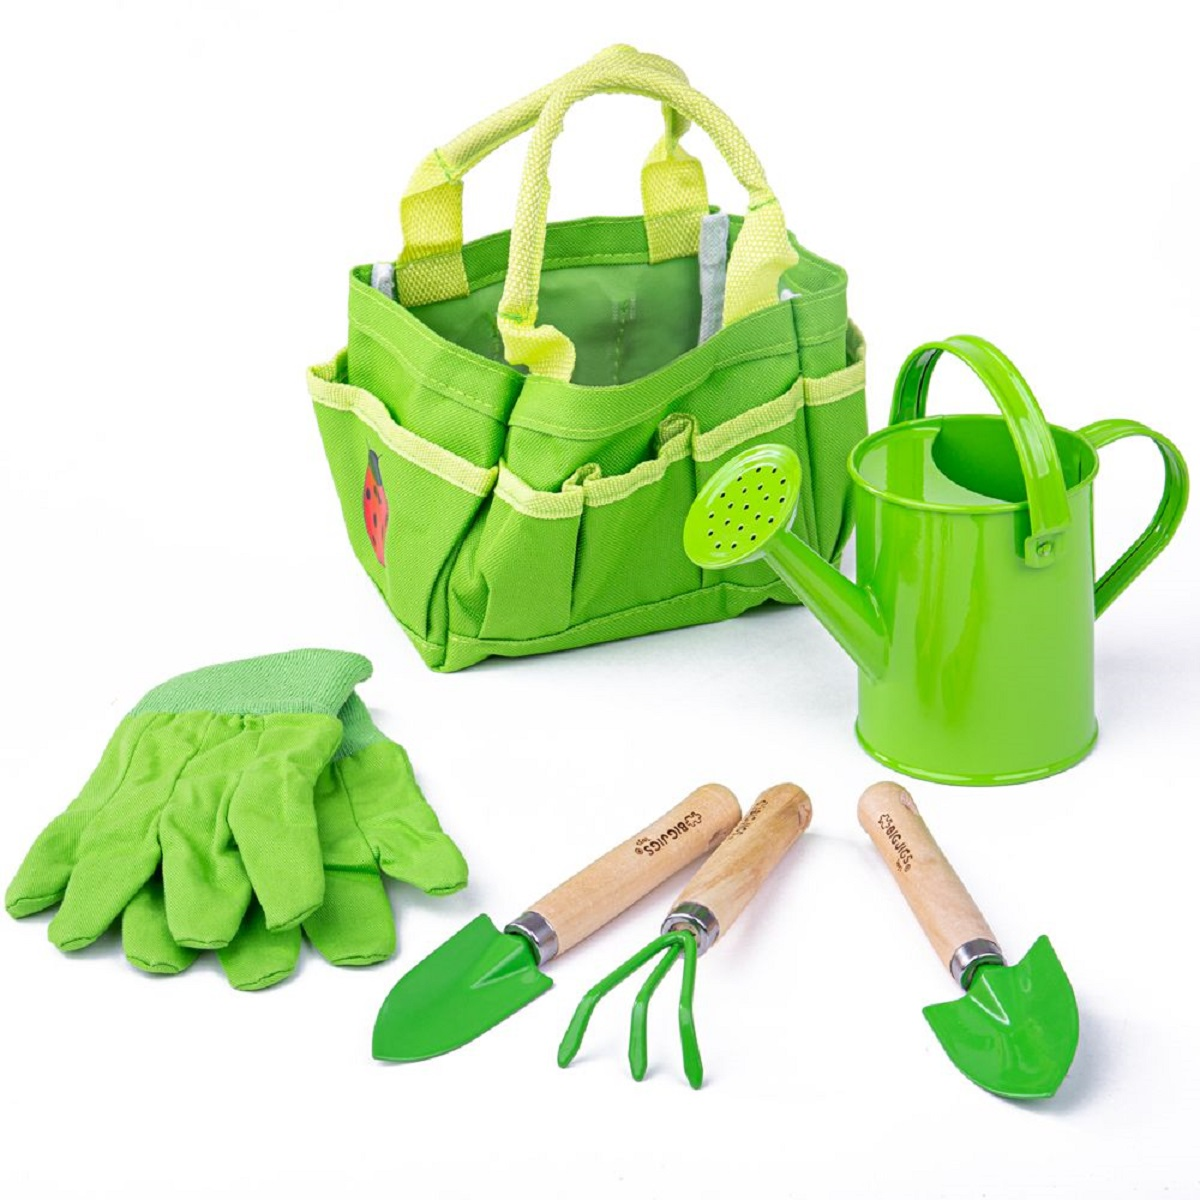 Childrens garden tools watering can kit gardening tools for Childrens gardening tools